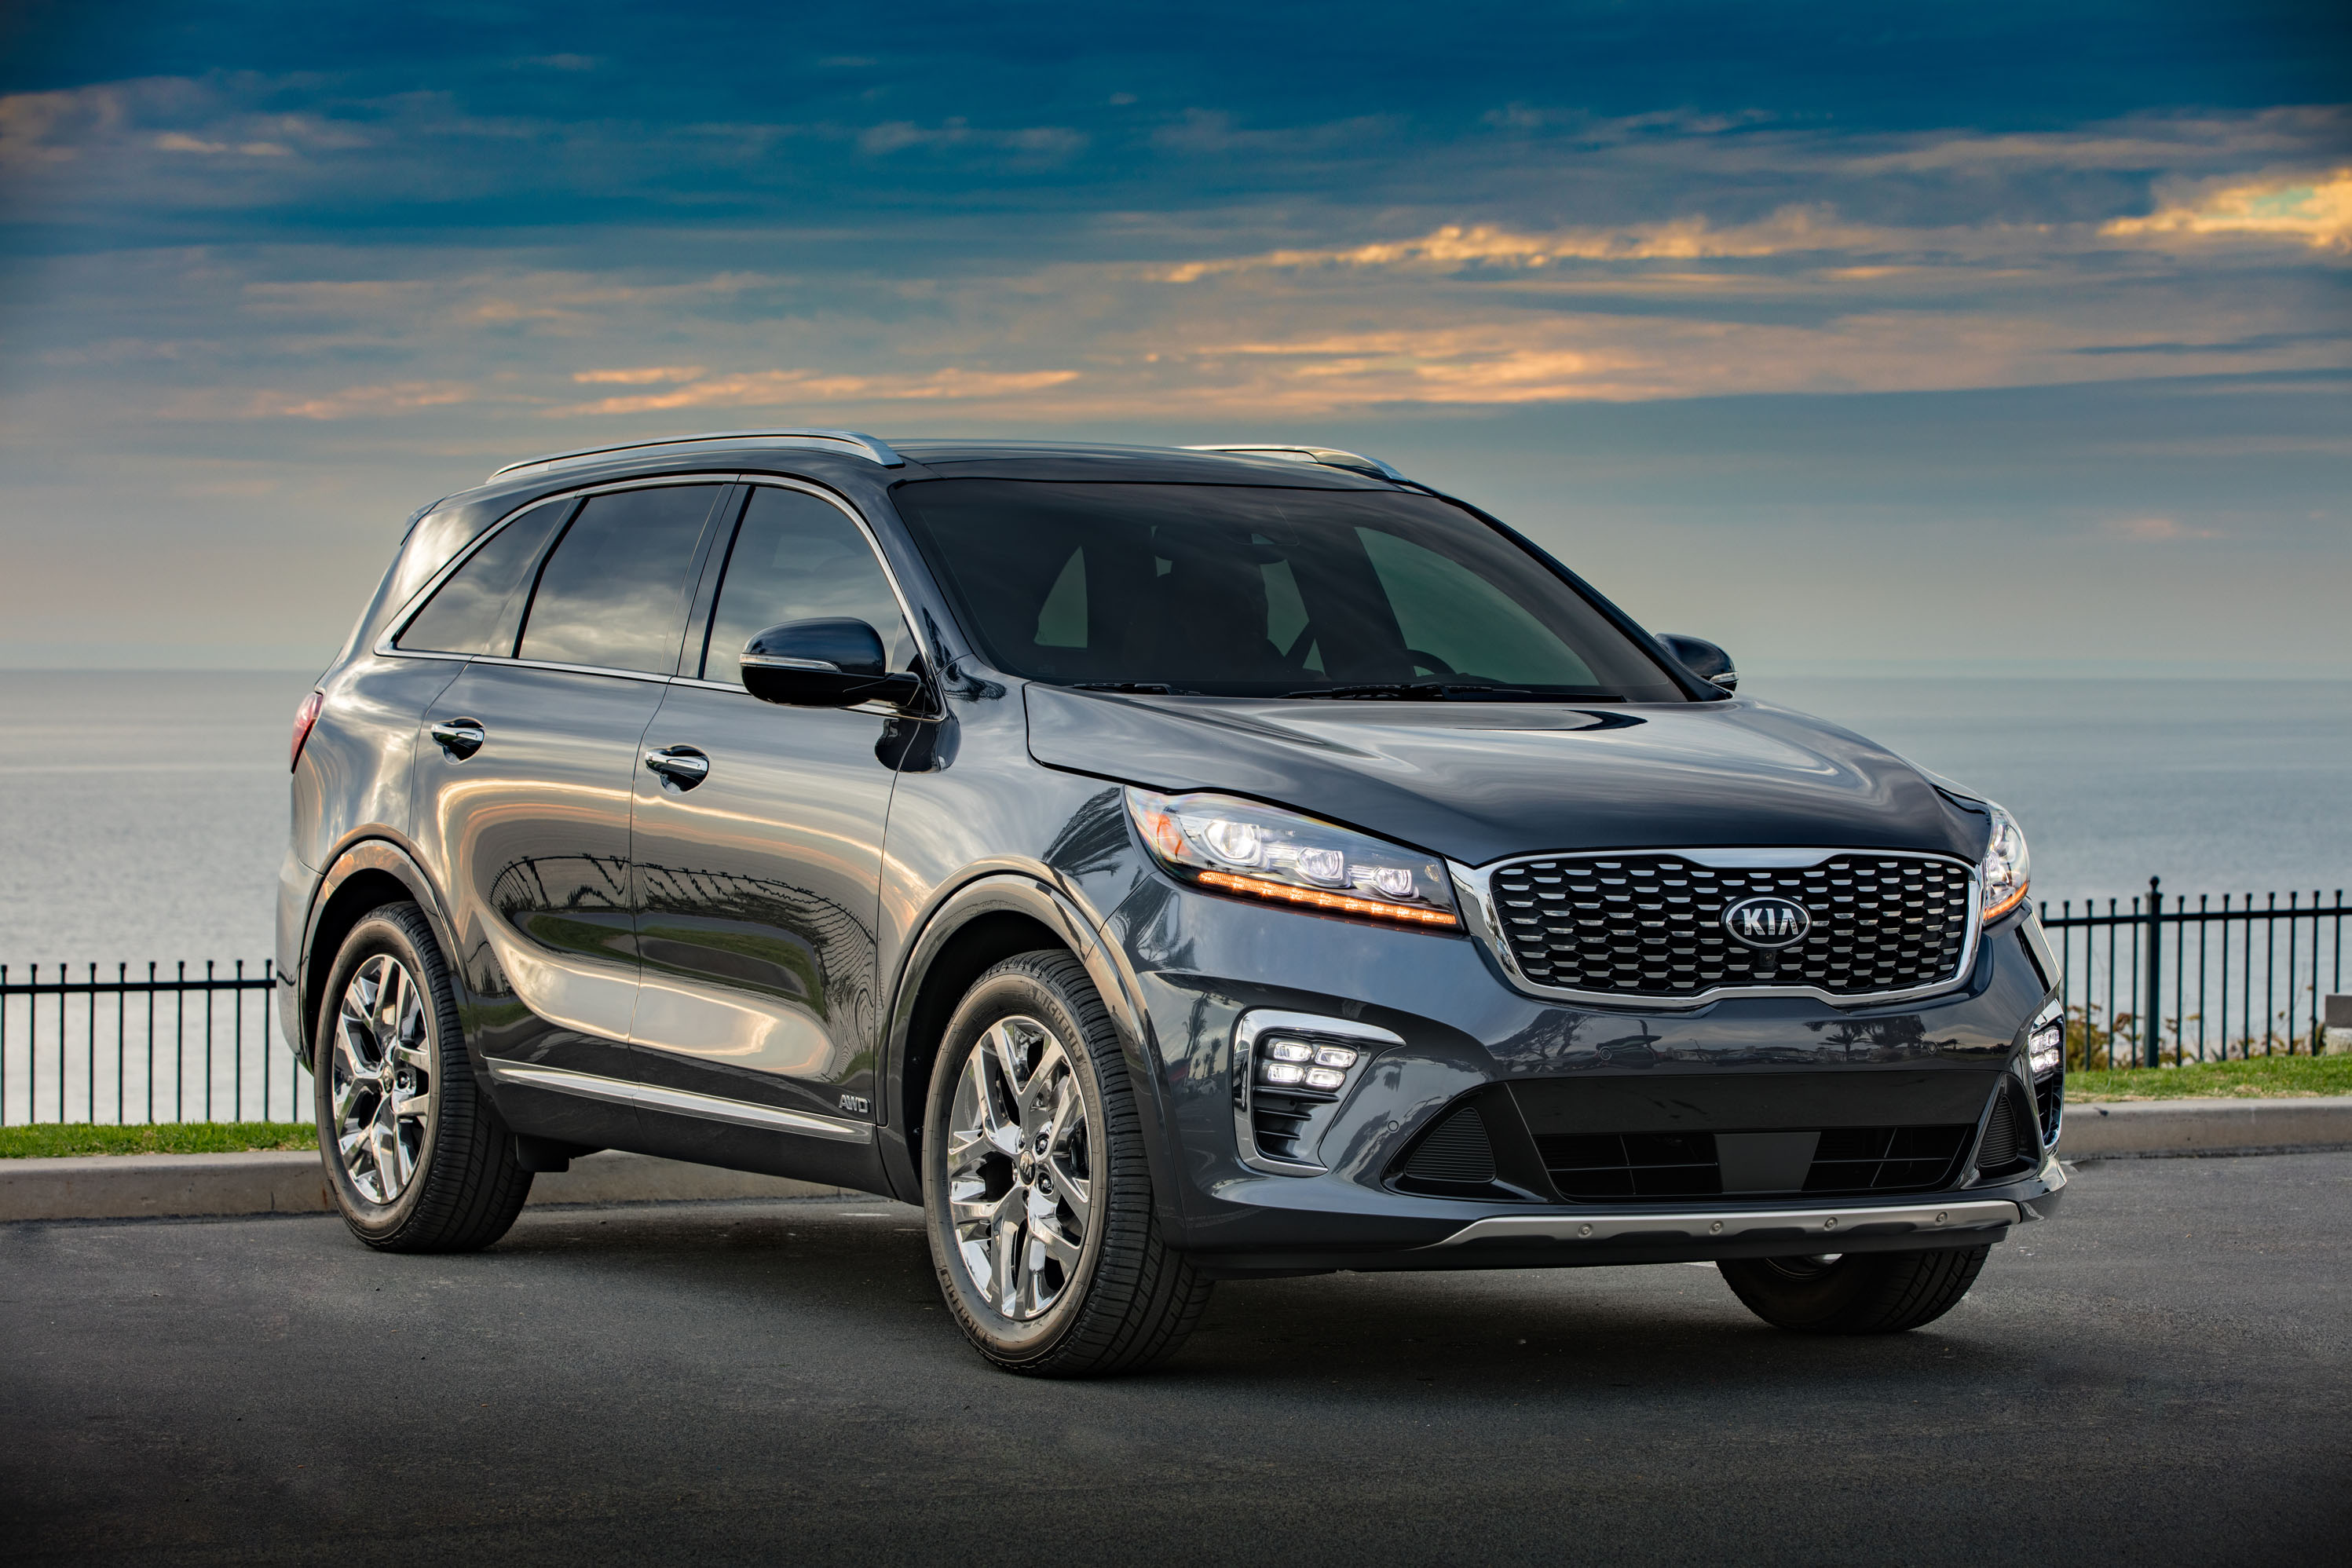 Kia Sorento Diesel crossover utility vehicle confirmed by pany